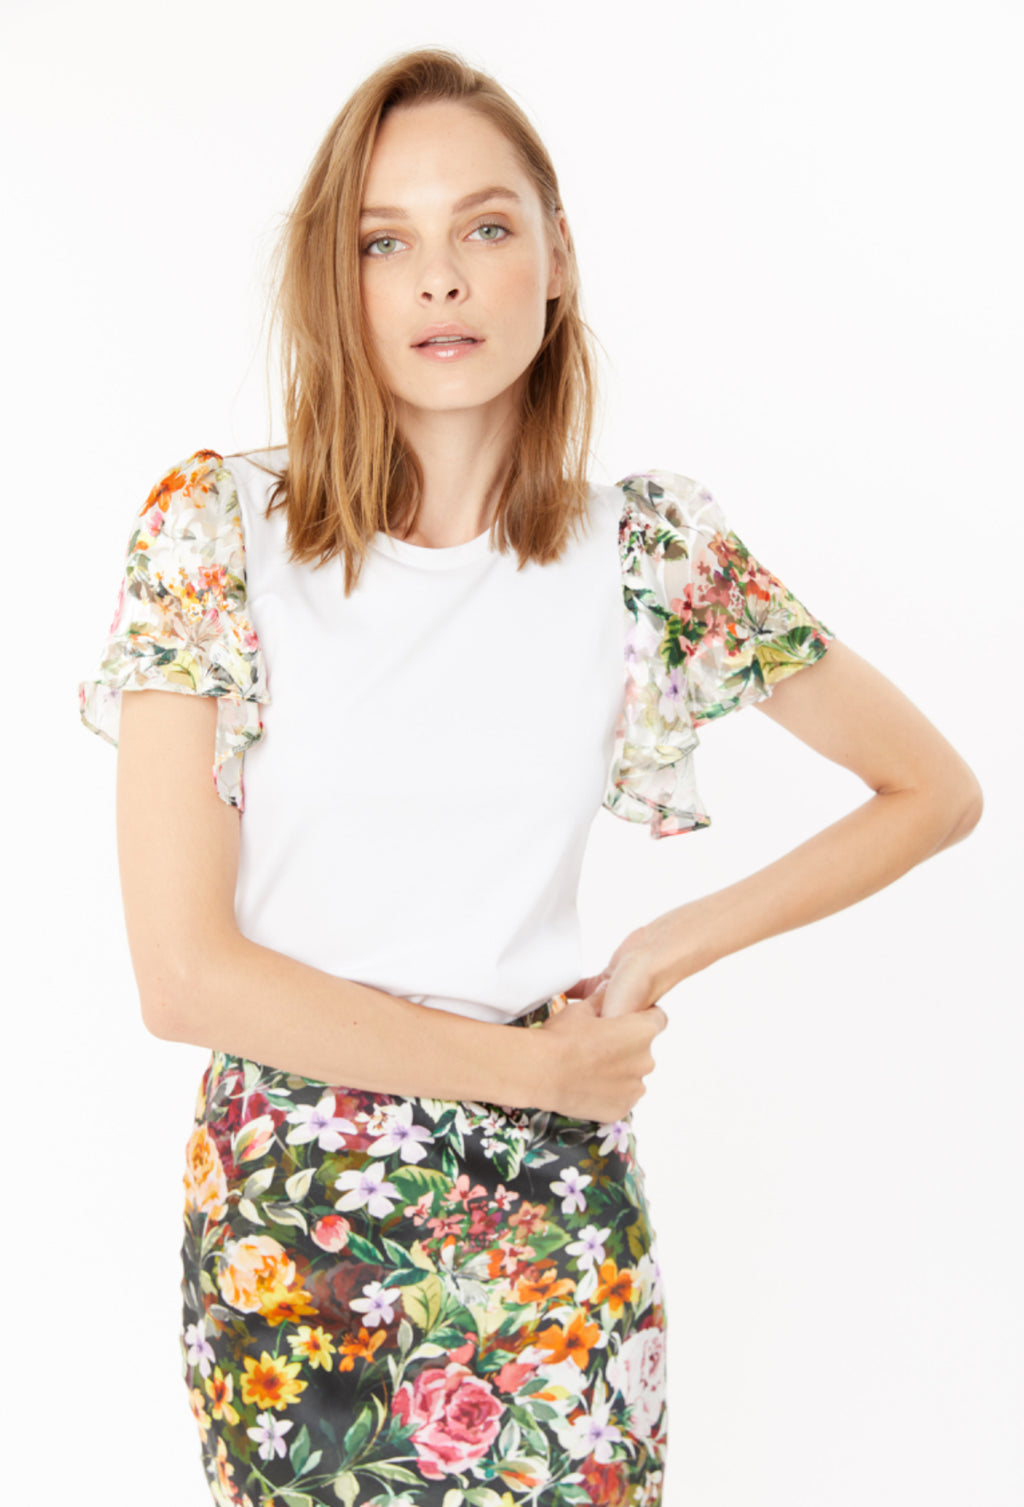 Kati - The Floral sleeve Top in White by Generation Love. Update your white tee shirt with this fun and flirty sheer floral print sleeve tee. Best seller!